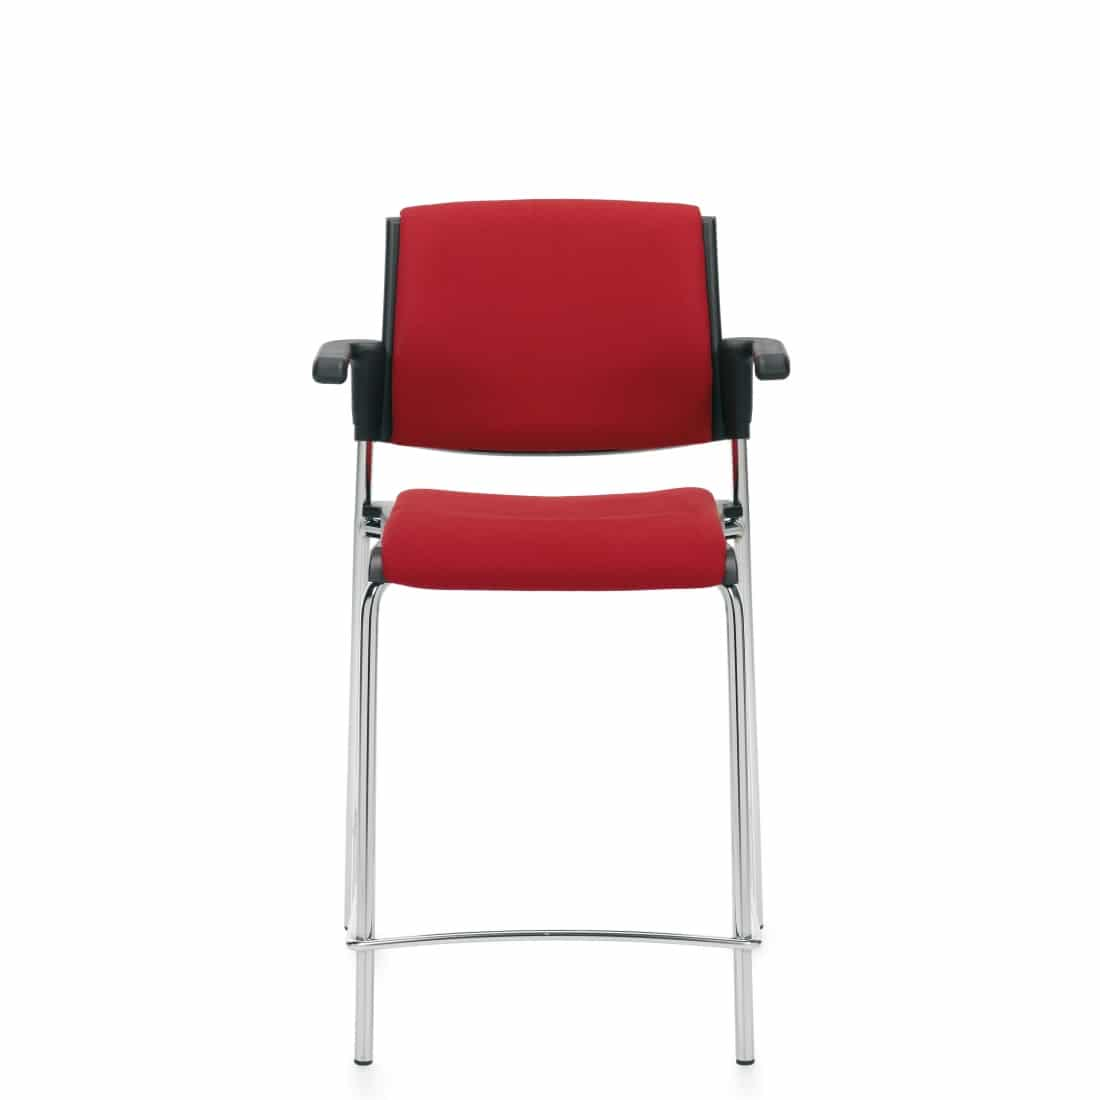 Counter Stool with Arms, Red Upholstered Seat & Back With Chrome Frame (6565CS)